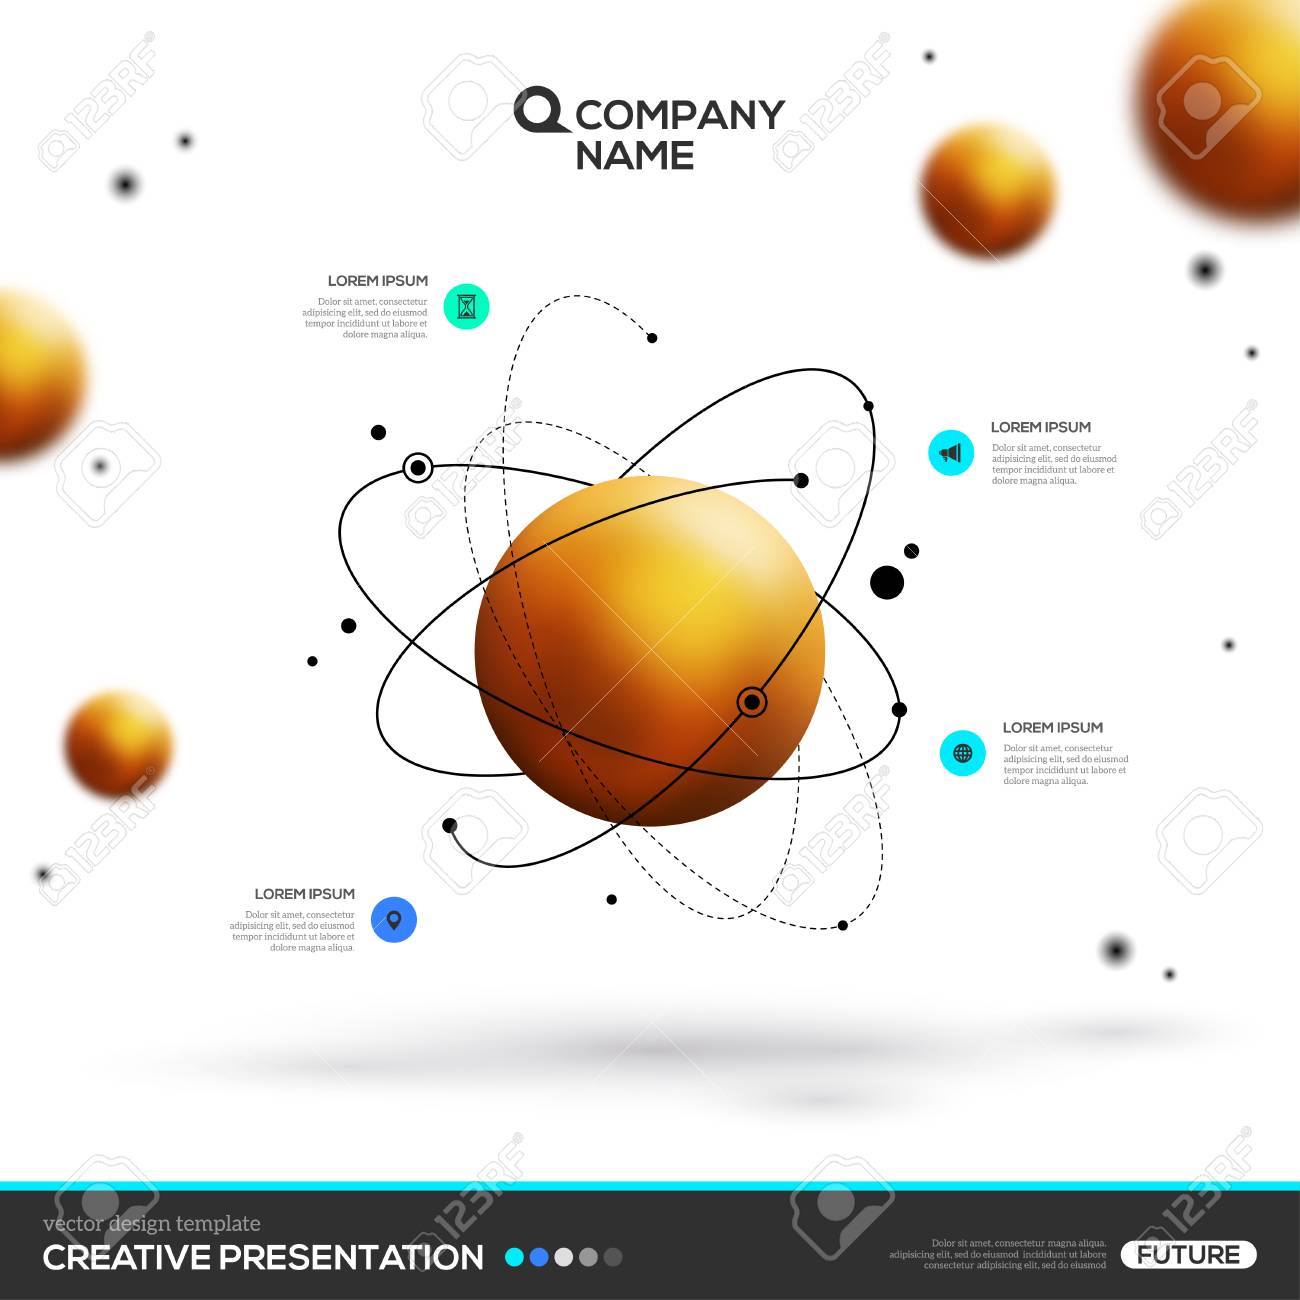 gold sphere particles and atomic structure stock vector - 79987415